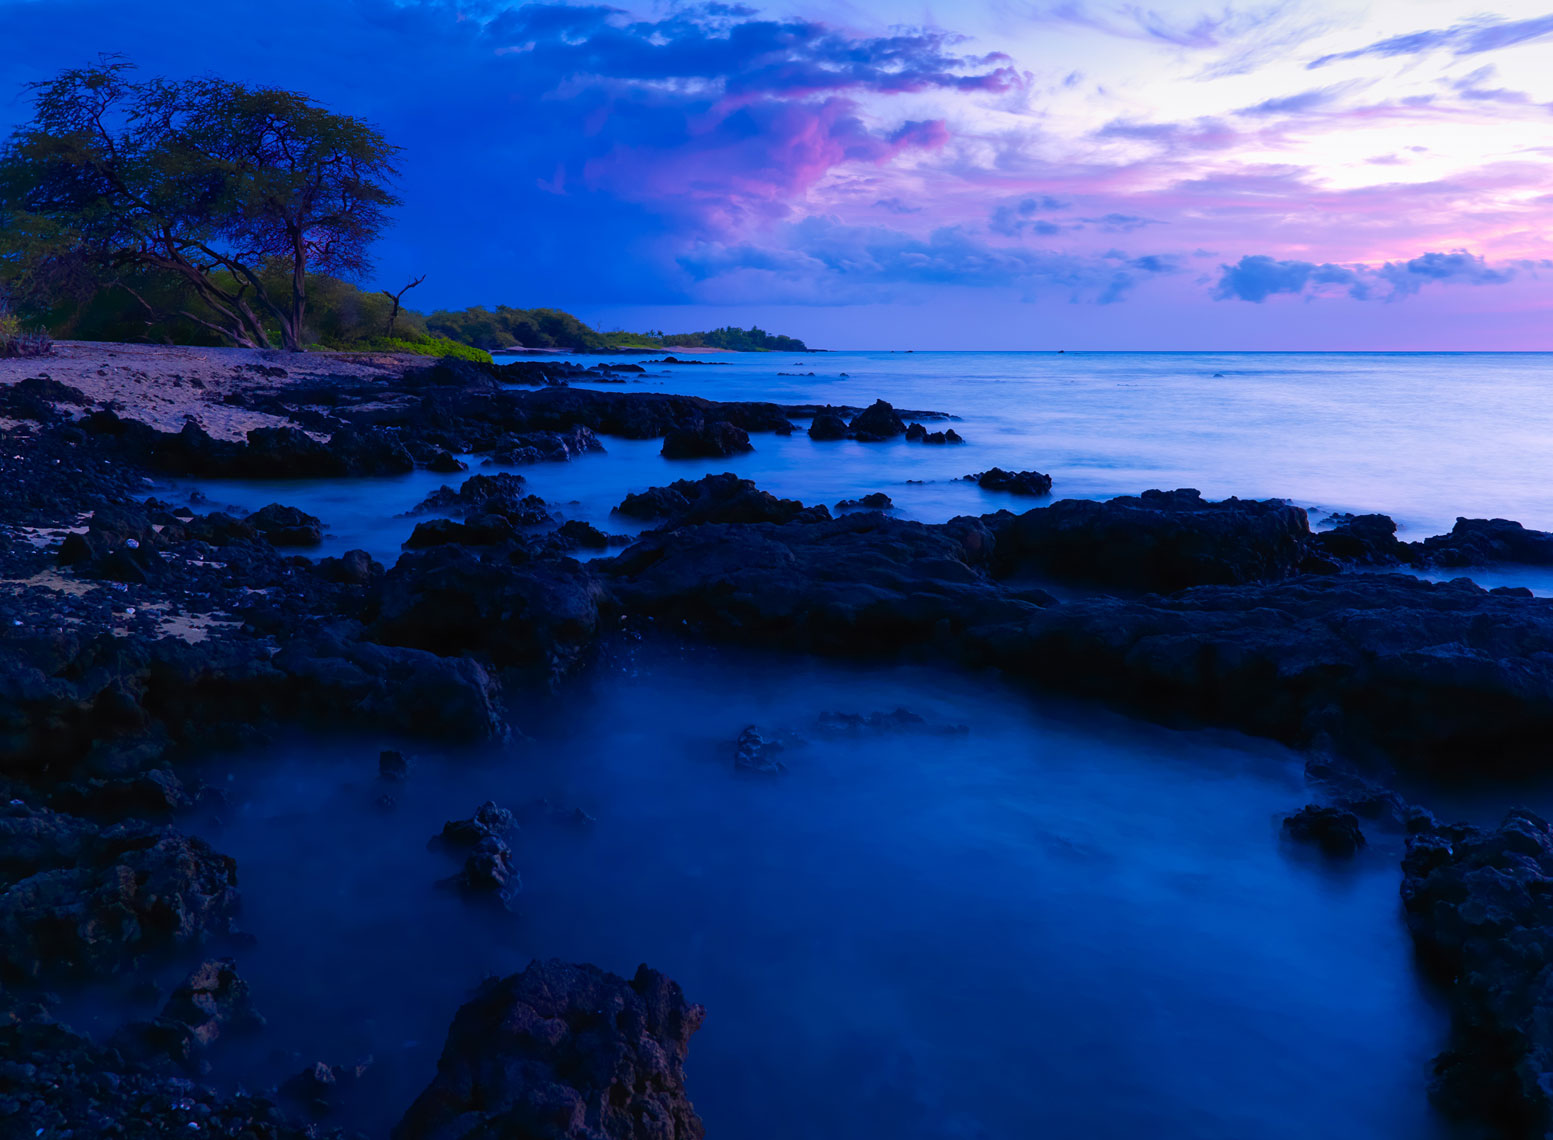 jeff-green-big-island-hawaii-dusk